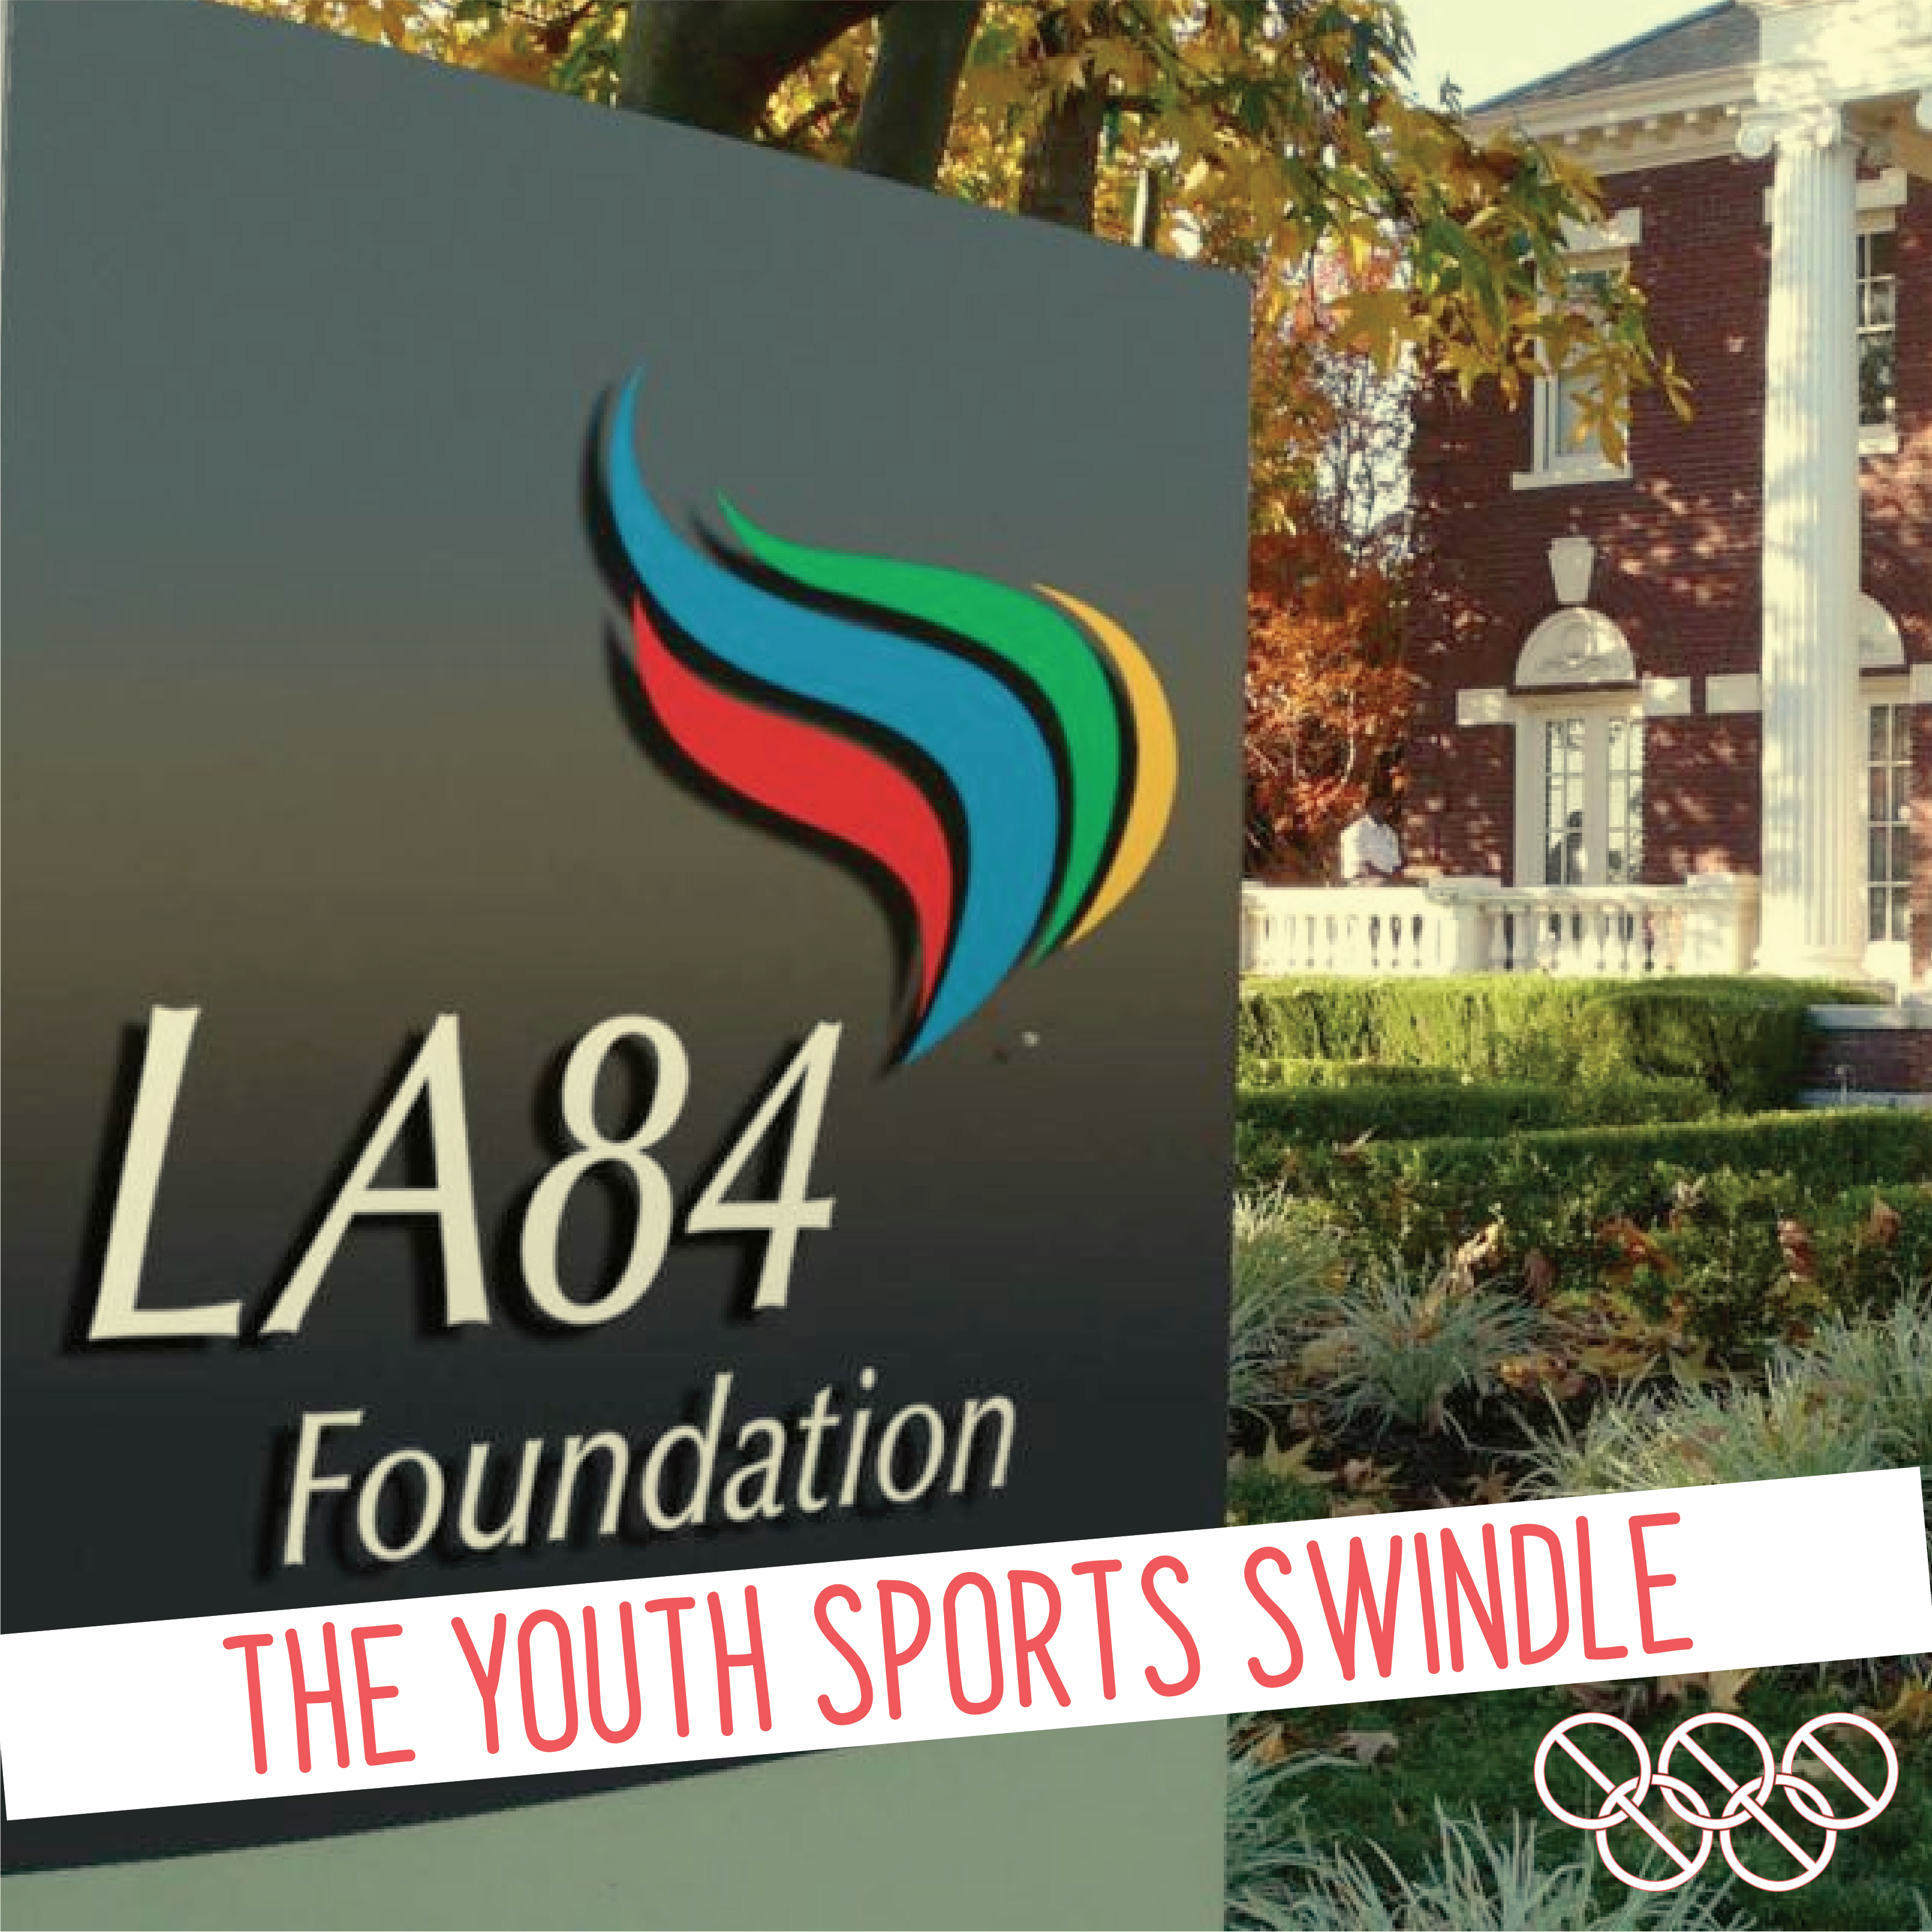 The Youth Sports Swindle: How the LA84 Foundation Undermines